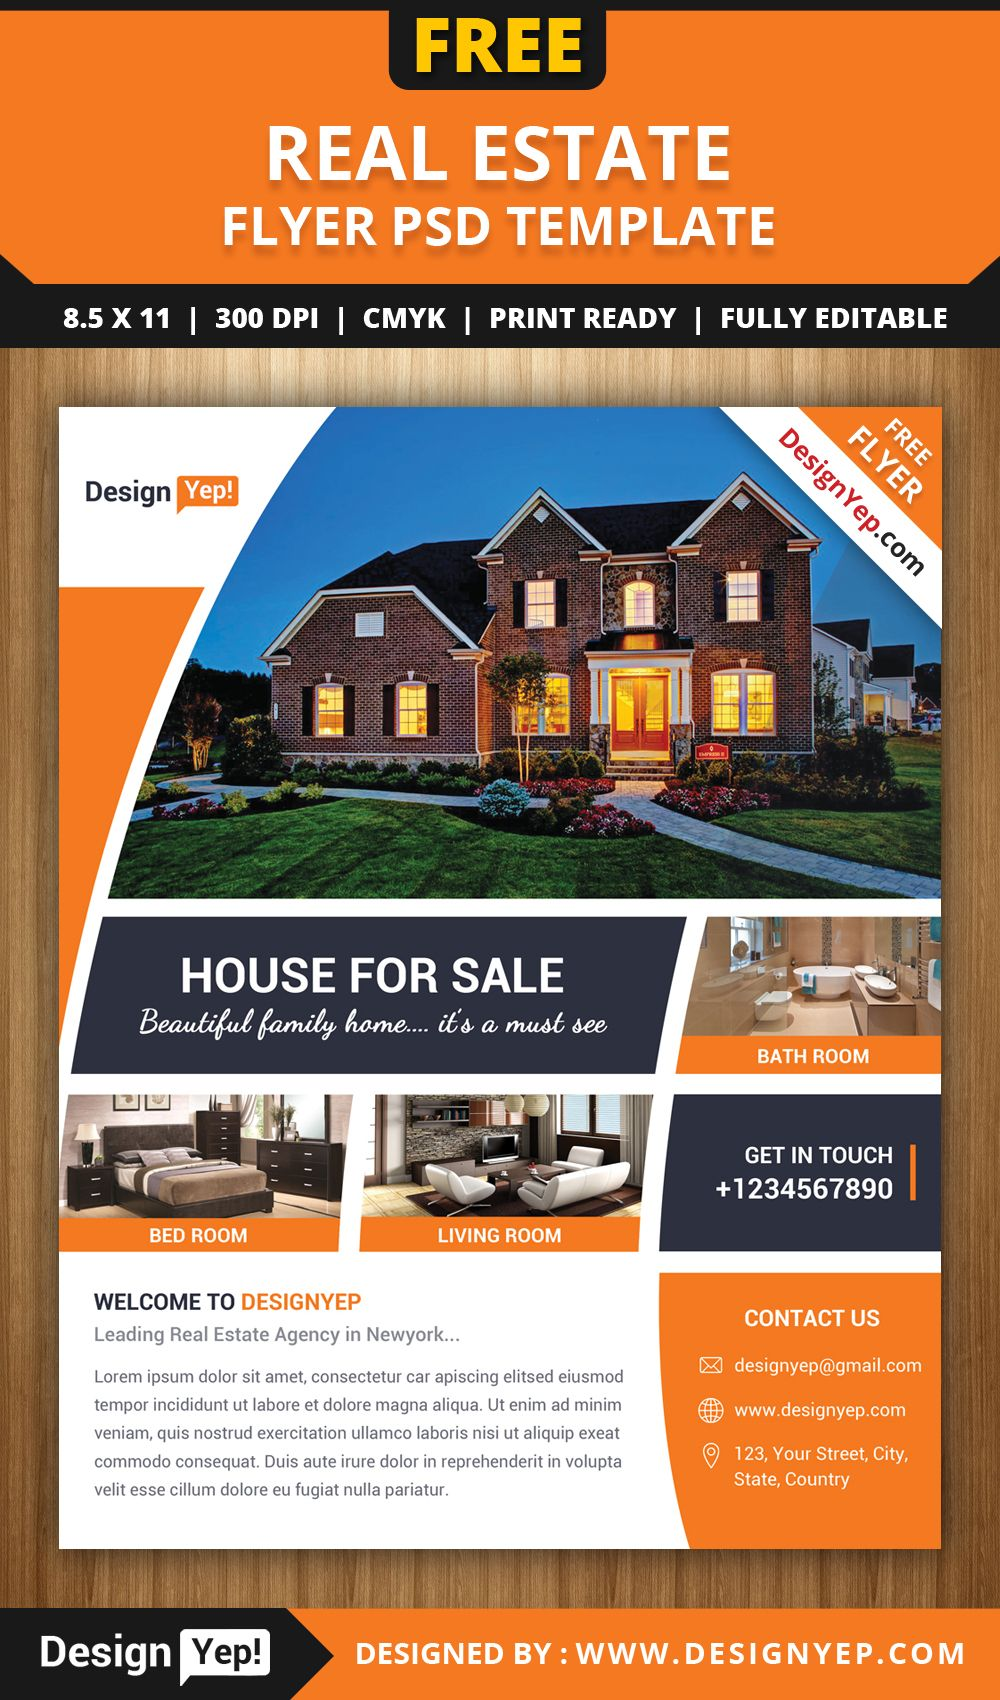 FreeRealEstateFlyerPSDTemplateDesignyep Free Flyers - Free real estate brochure templates